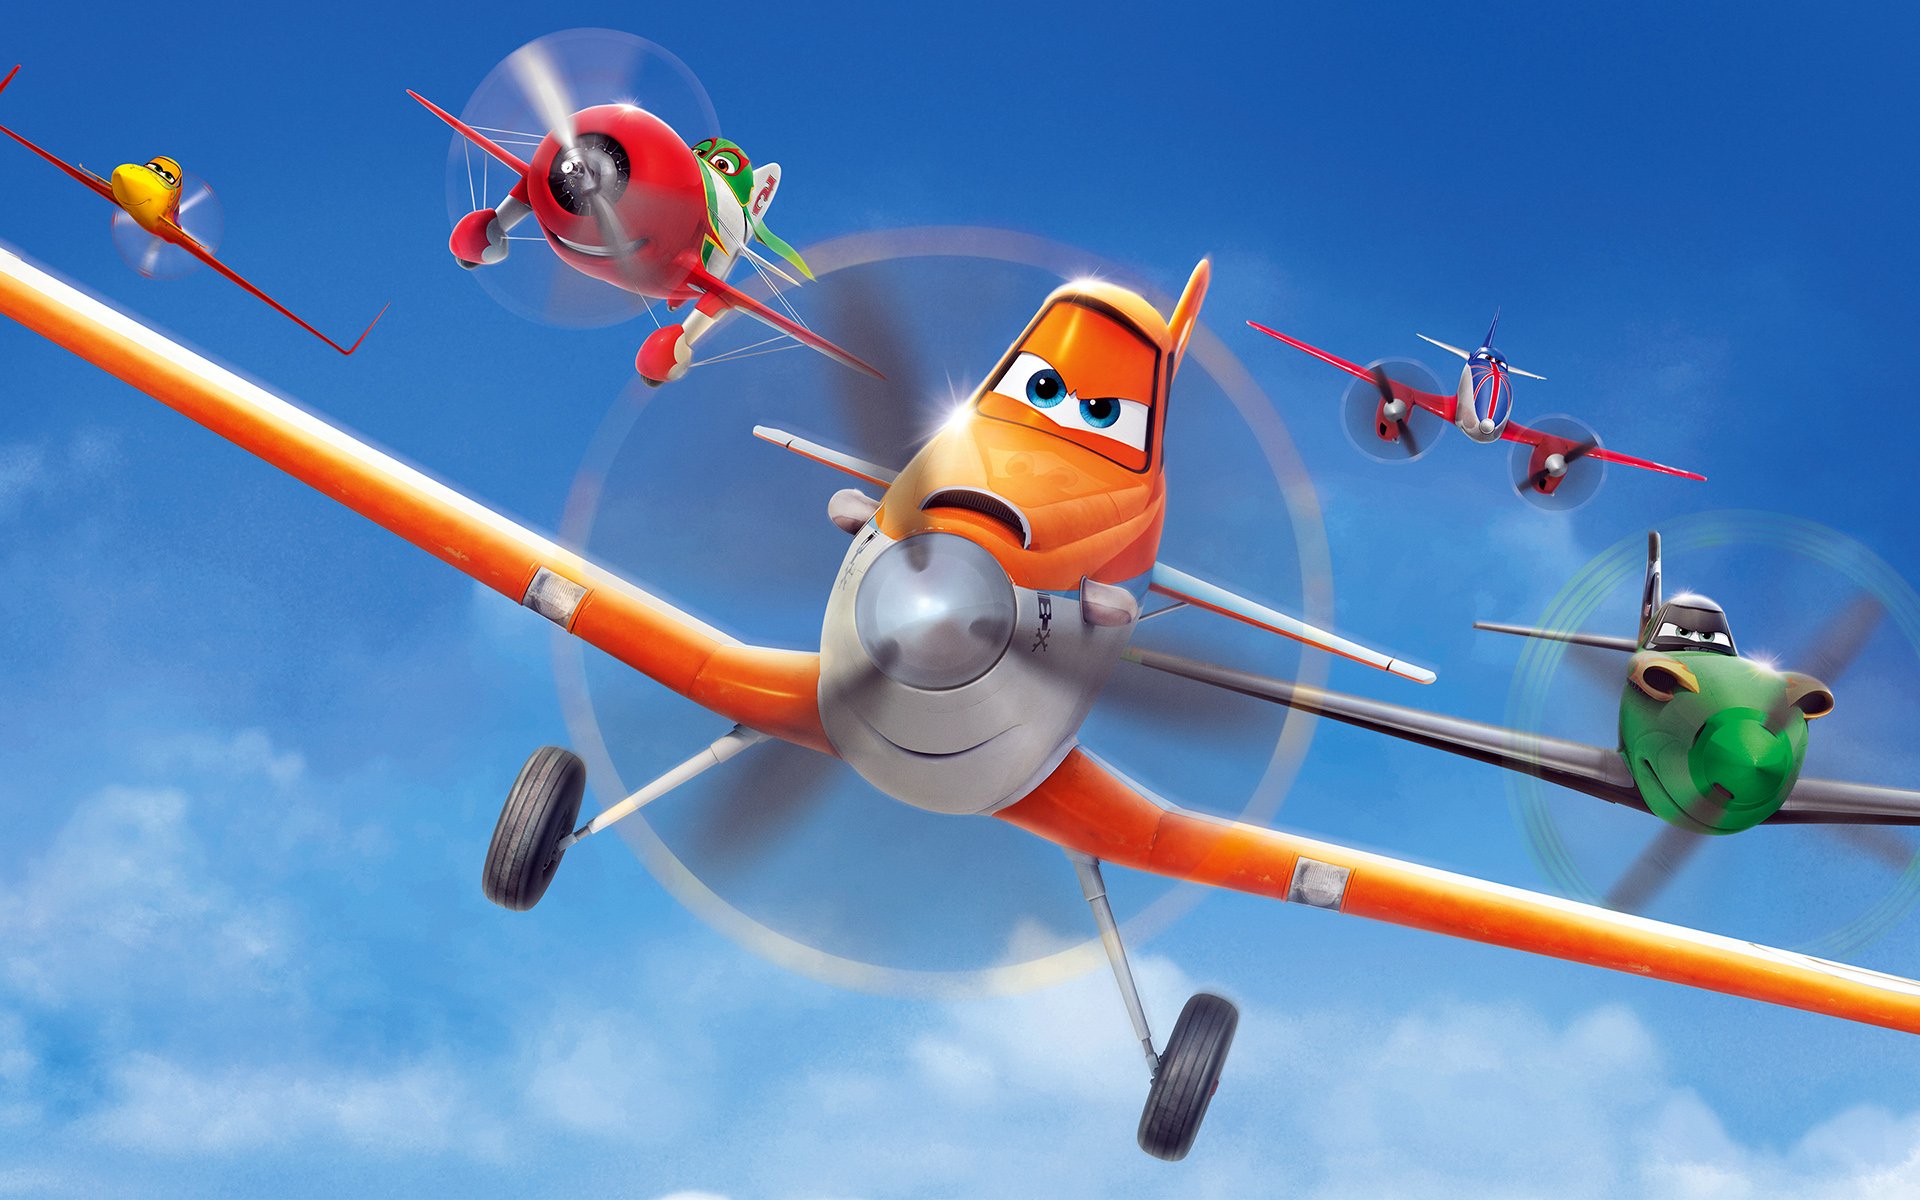 Cool planes movie wallpaper 28906 1920x1200 px for American cuisine movie download